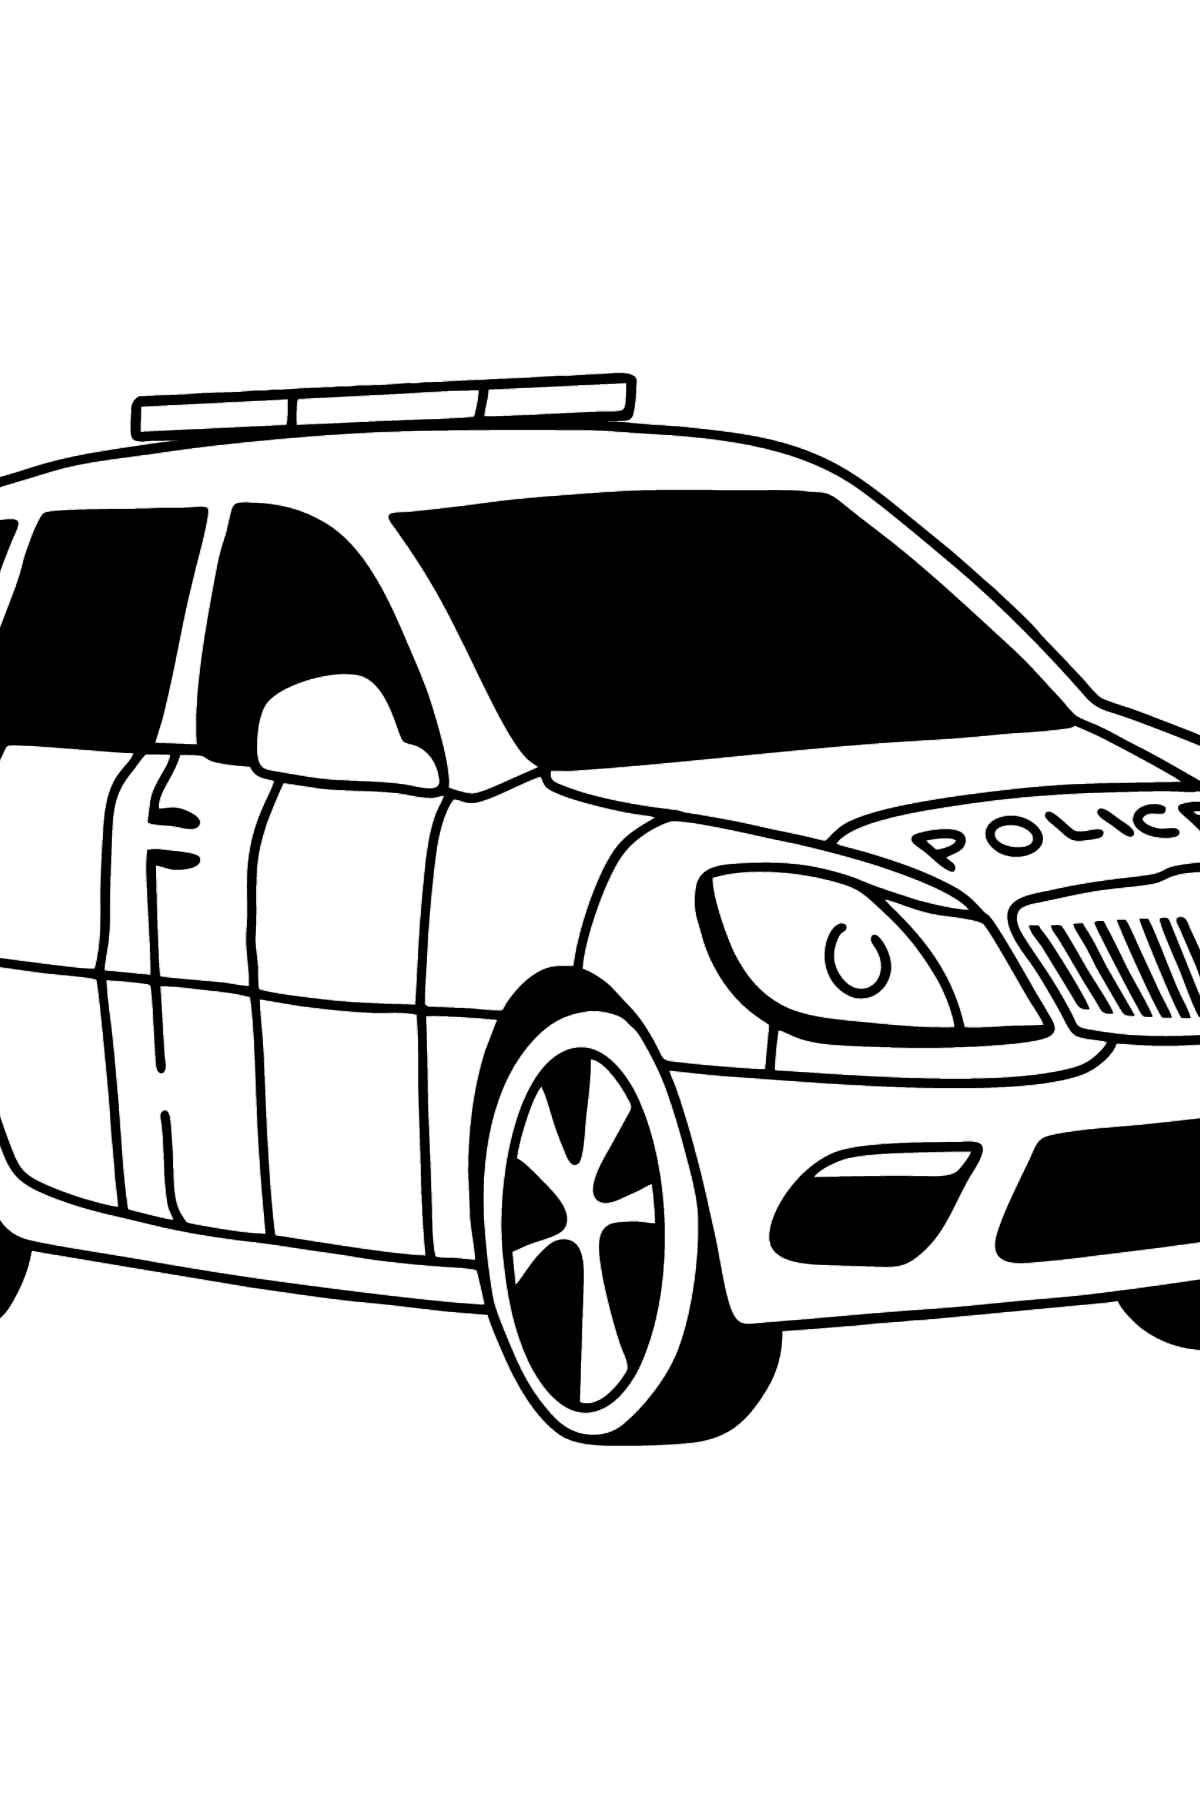 UK Police Car coloring page - Coloring Pages for Kids